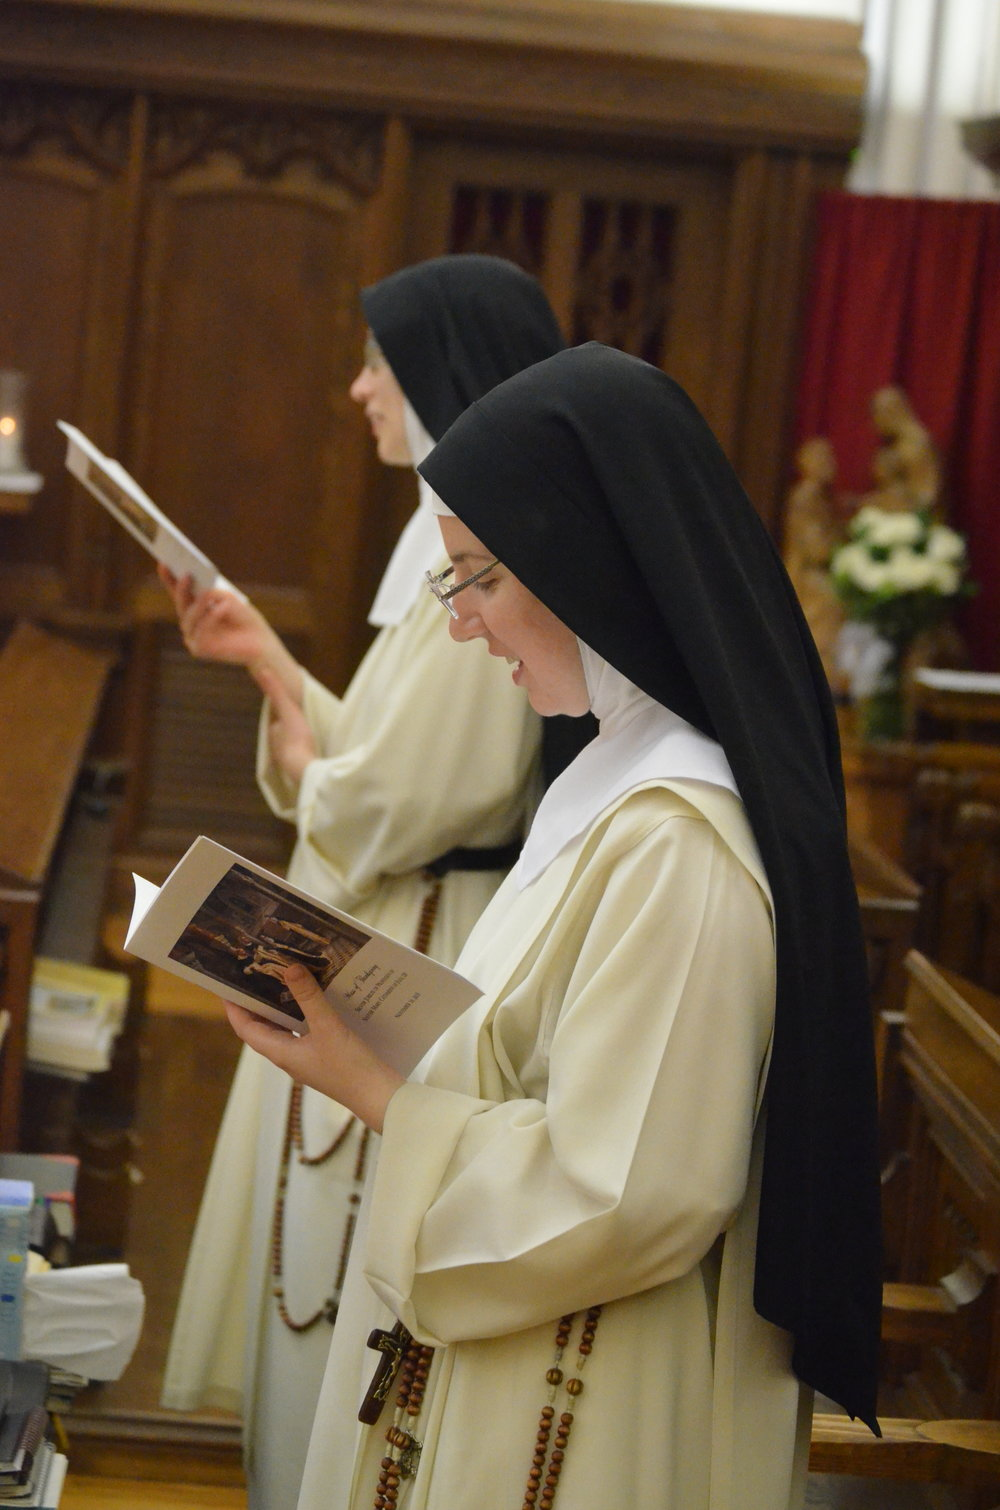 Sr. Mary Veronica and Sr. Maria Johanna